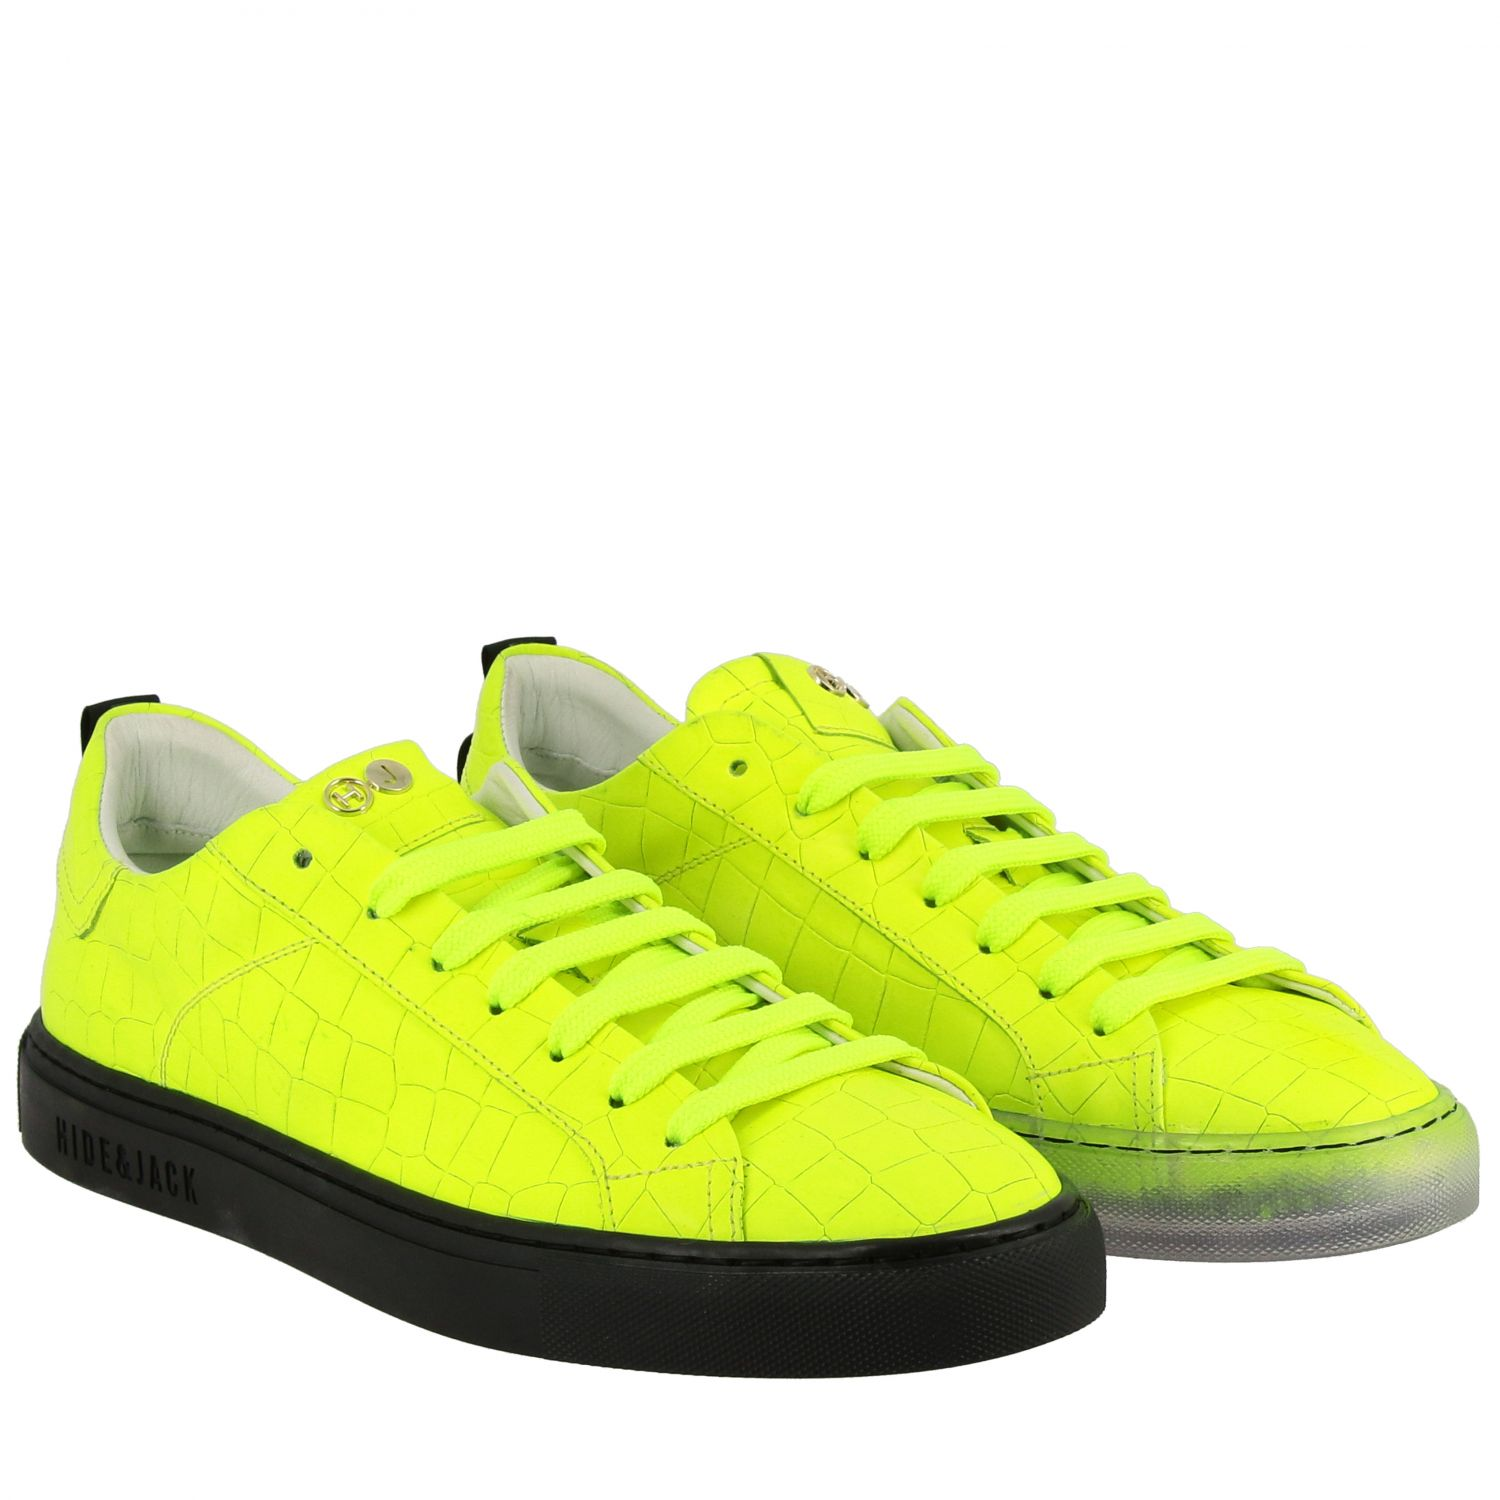 Sneakers pelle stampa cocco fluo giallo 2